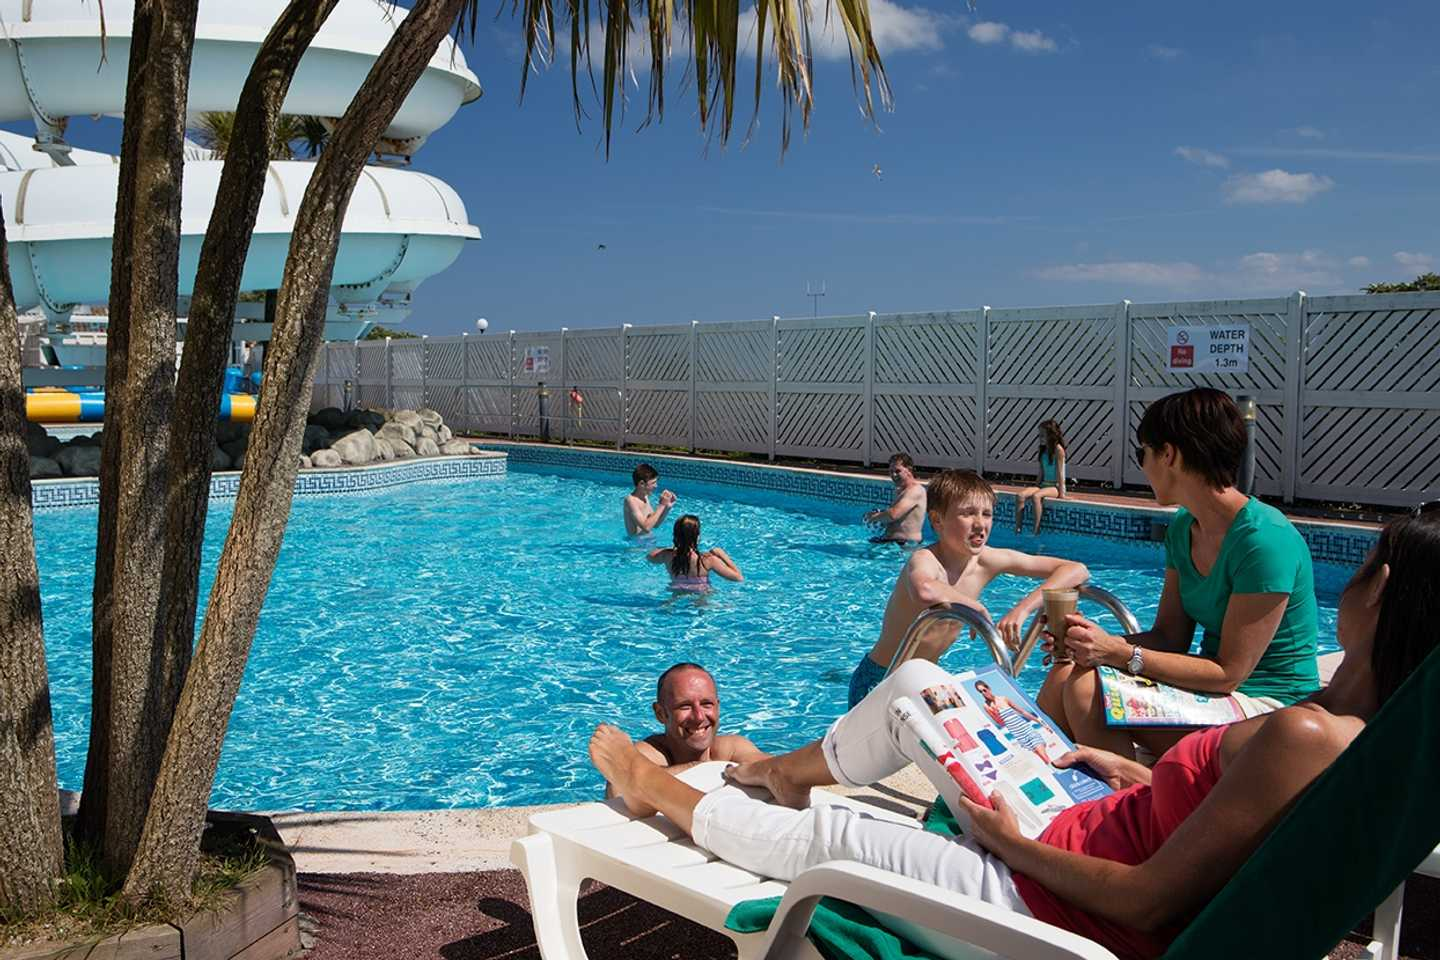 Guests swimming in the heated outdoor pool